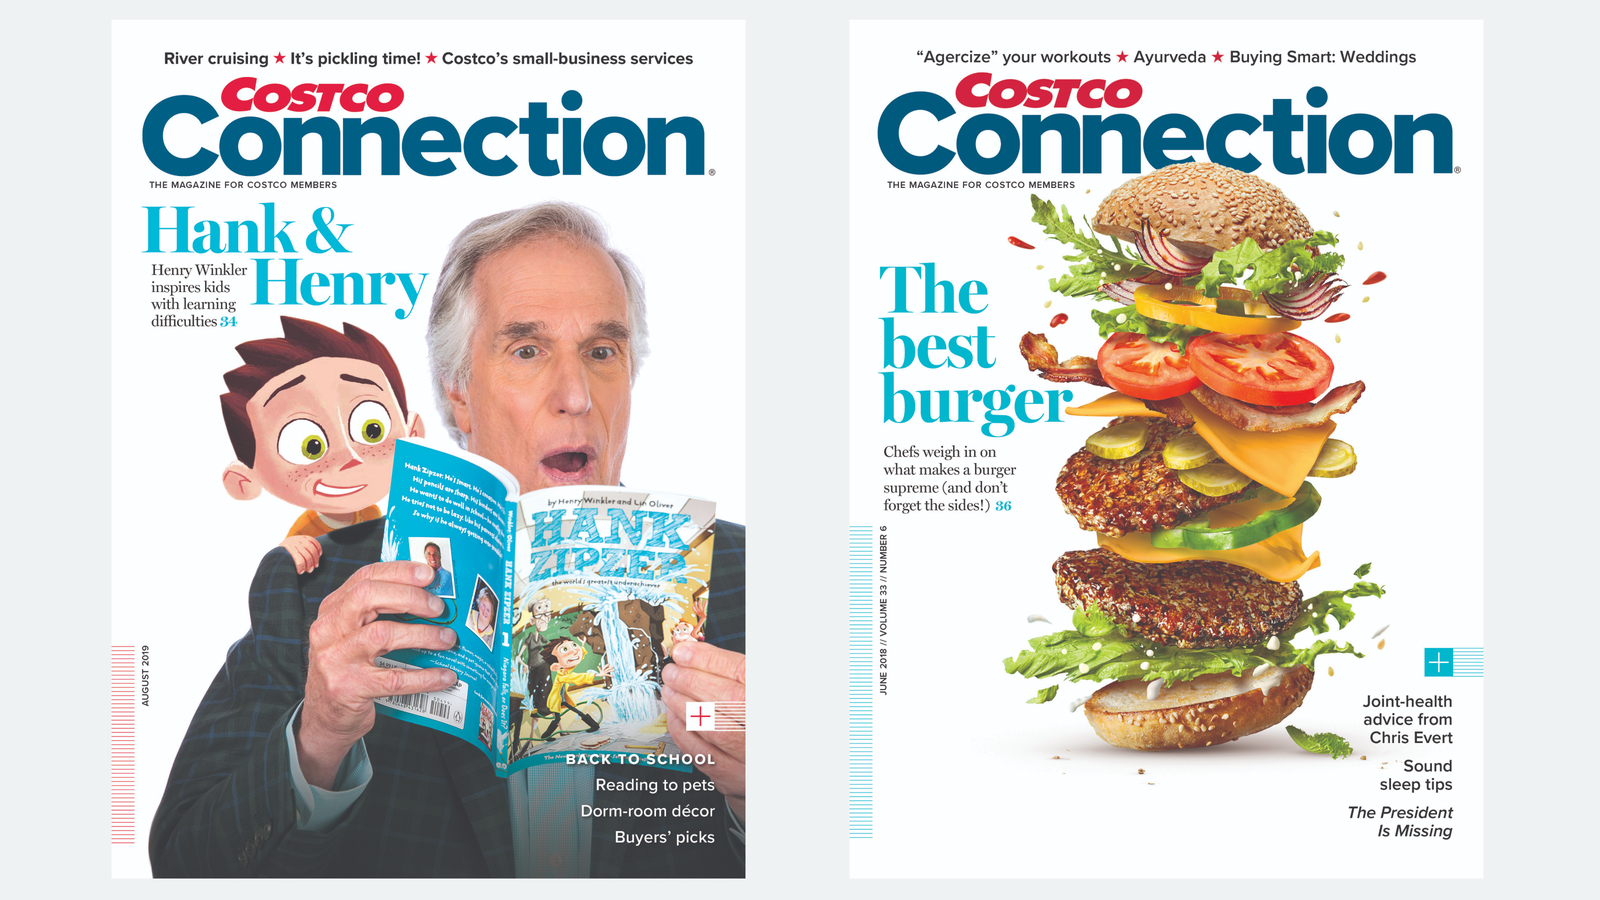 The Costco Connection is America's fourth biggest magazine